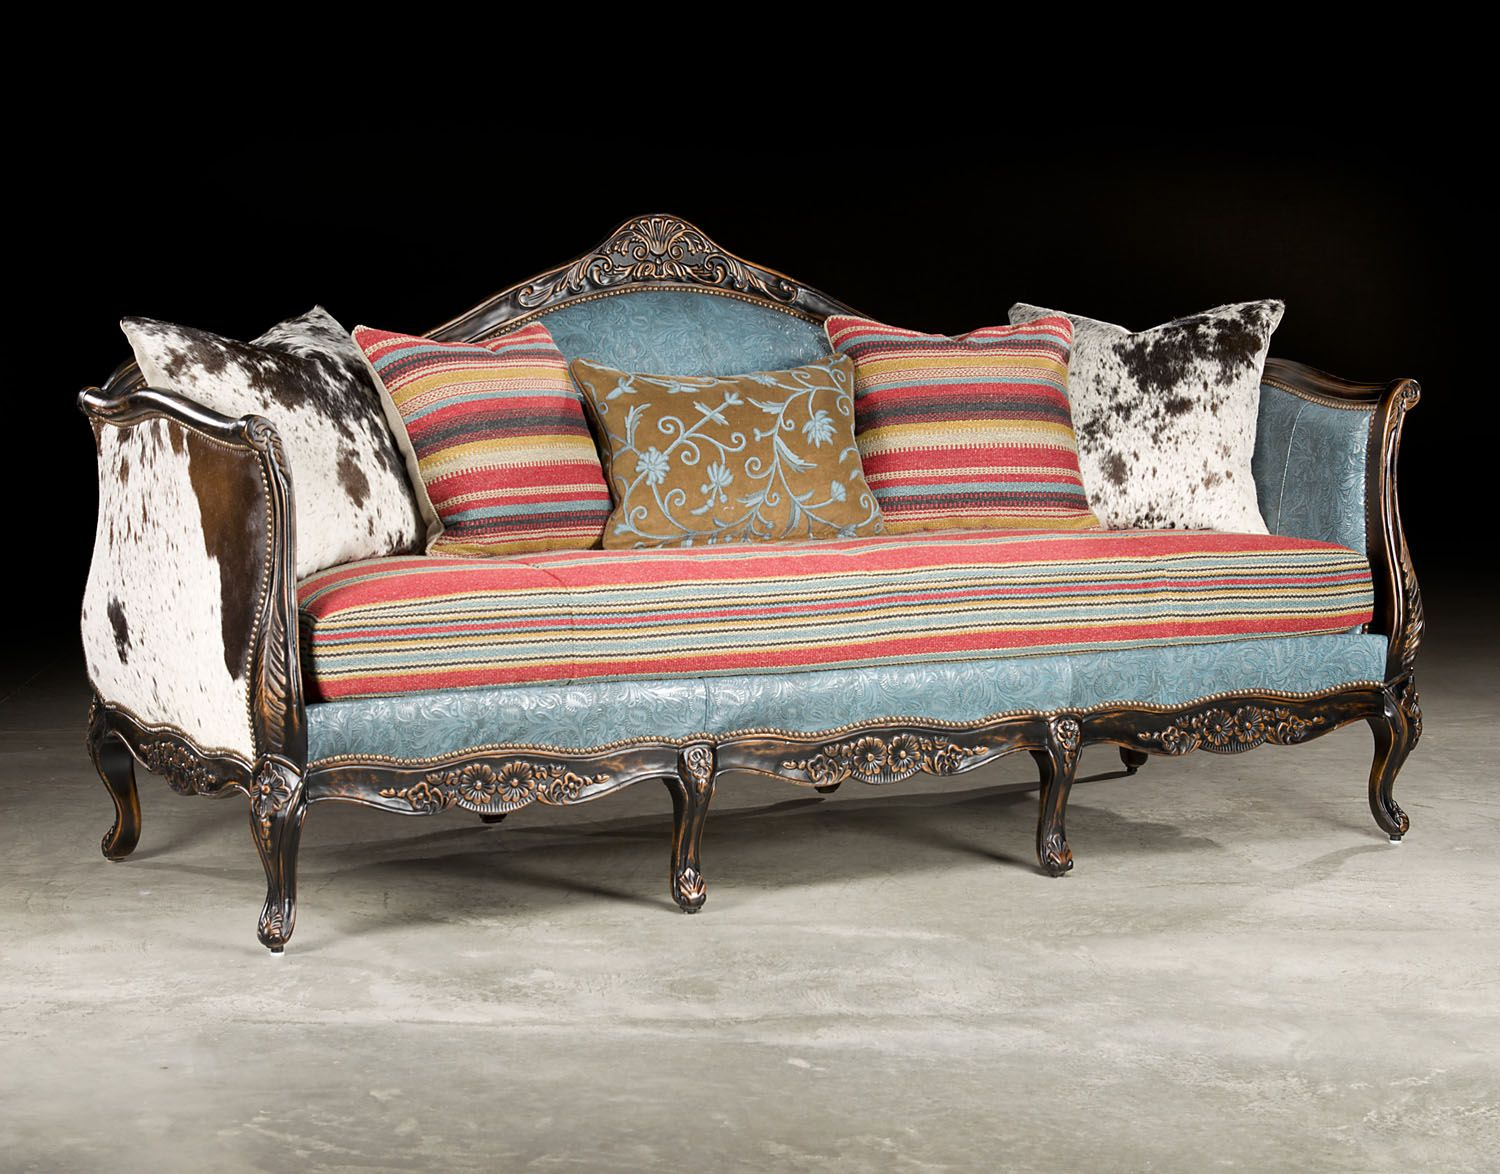 Okay I'm Sure This Beautiful Sofa Costs A Fortune But A